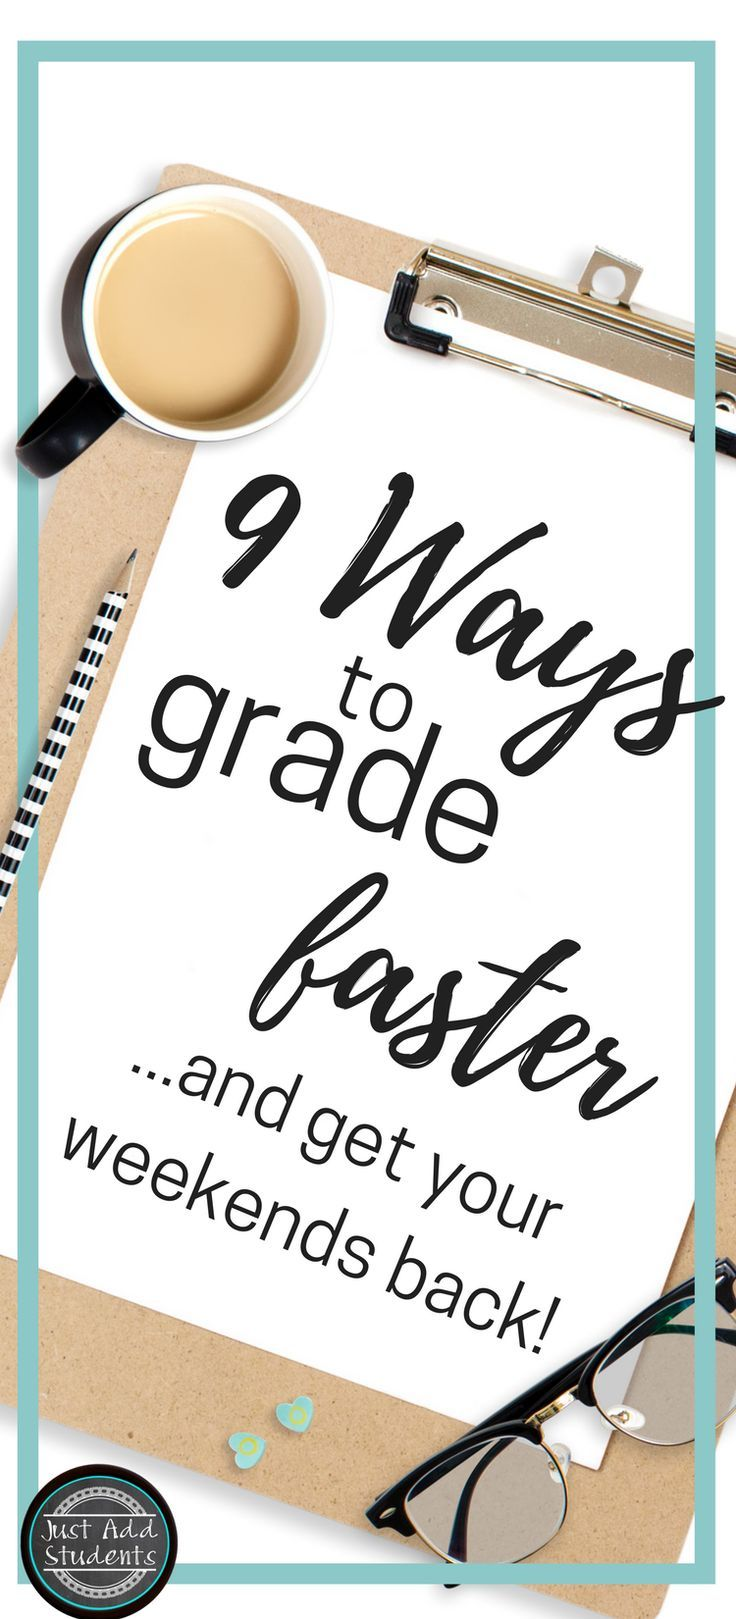 Nine ways to help you save time grading, streamline planning, use formative assessments, checklists, and rubrics.  Designed to simplify grading writing and other ELA projects.  Ideas to help organize your teaching life and save you time, so you can get back your weekends! #teachingwriting #teachingresources #writing #gradinghacks